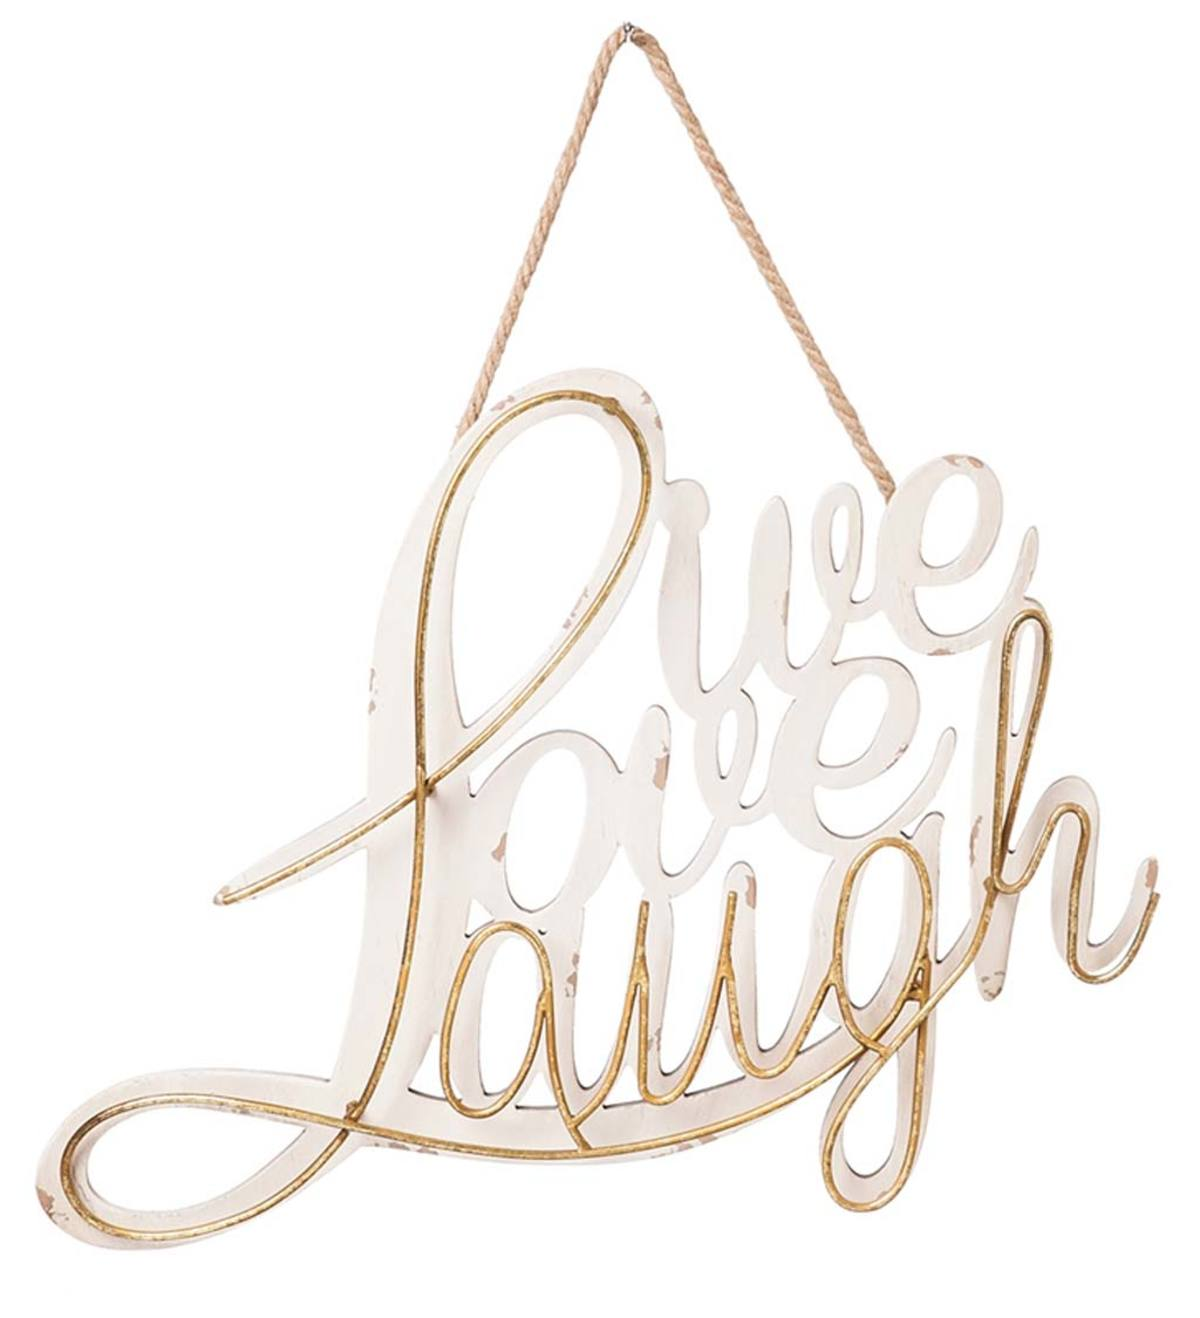 Live Love Laugh Wood & Metal Hanging Wall Art